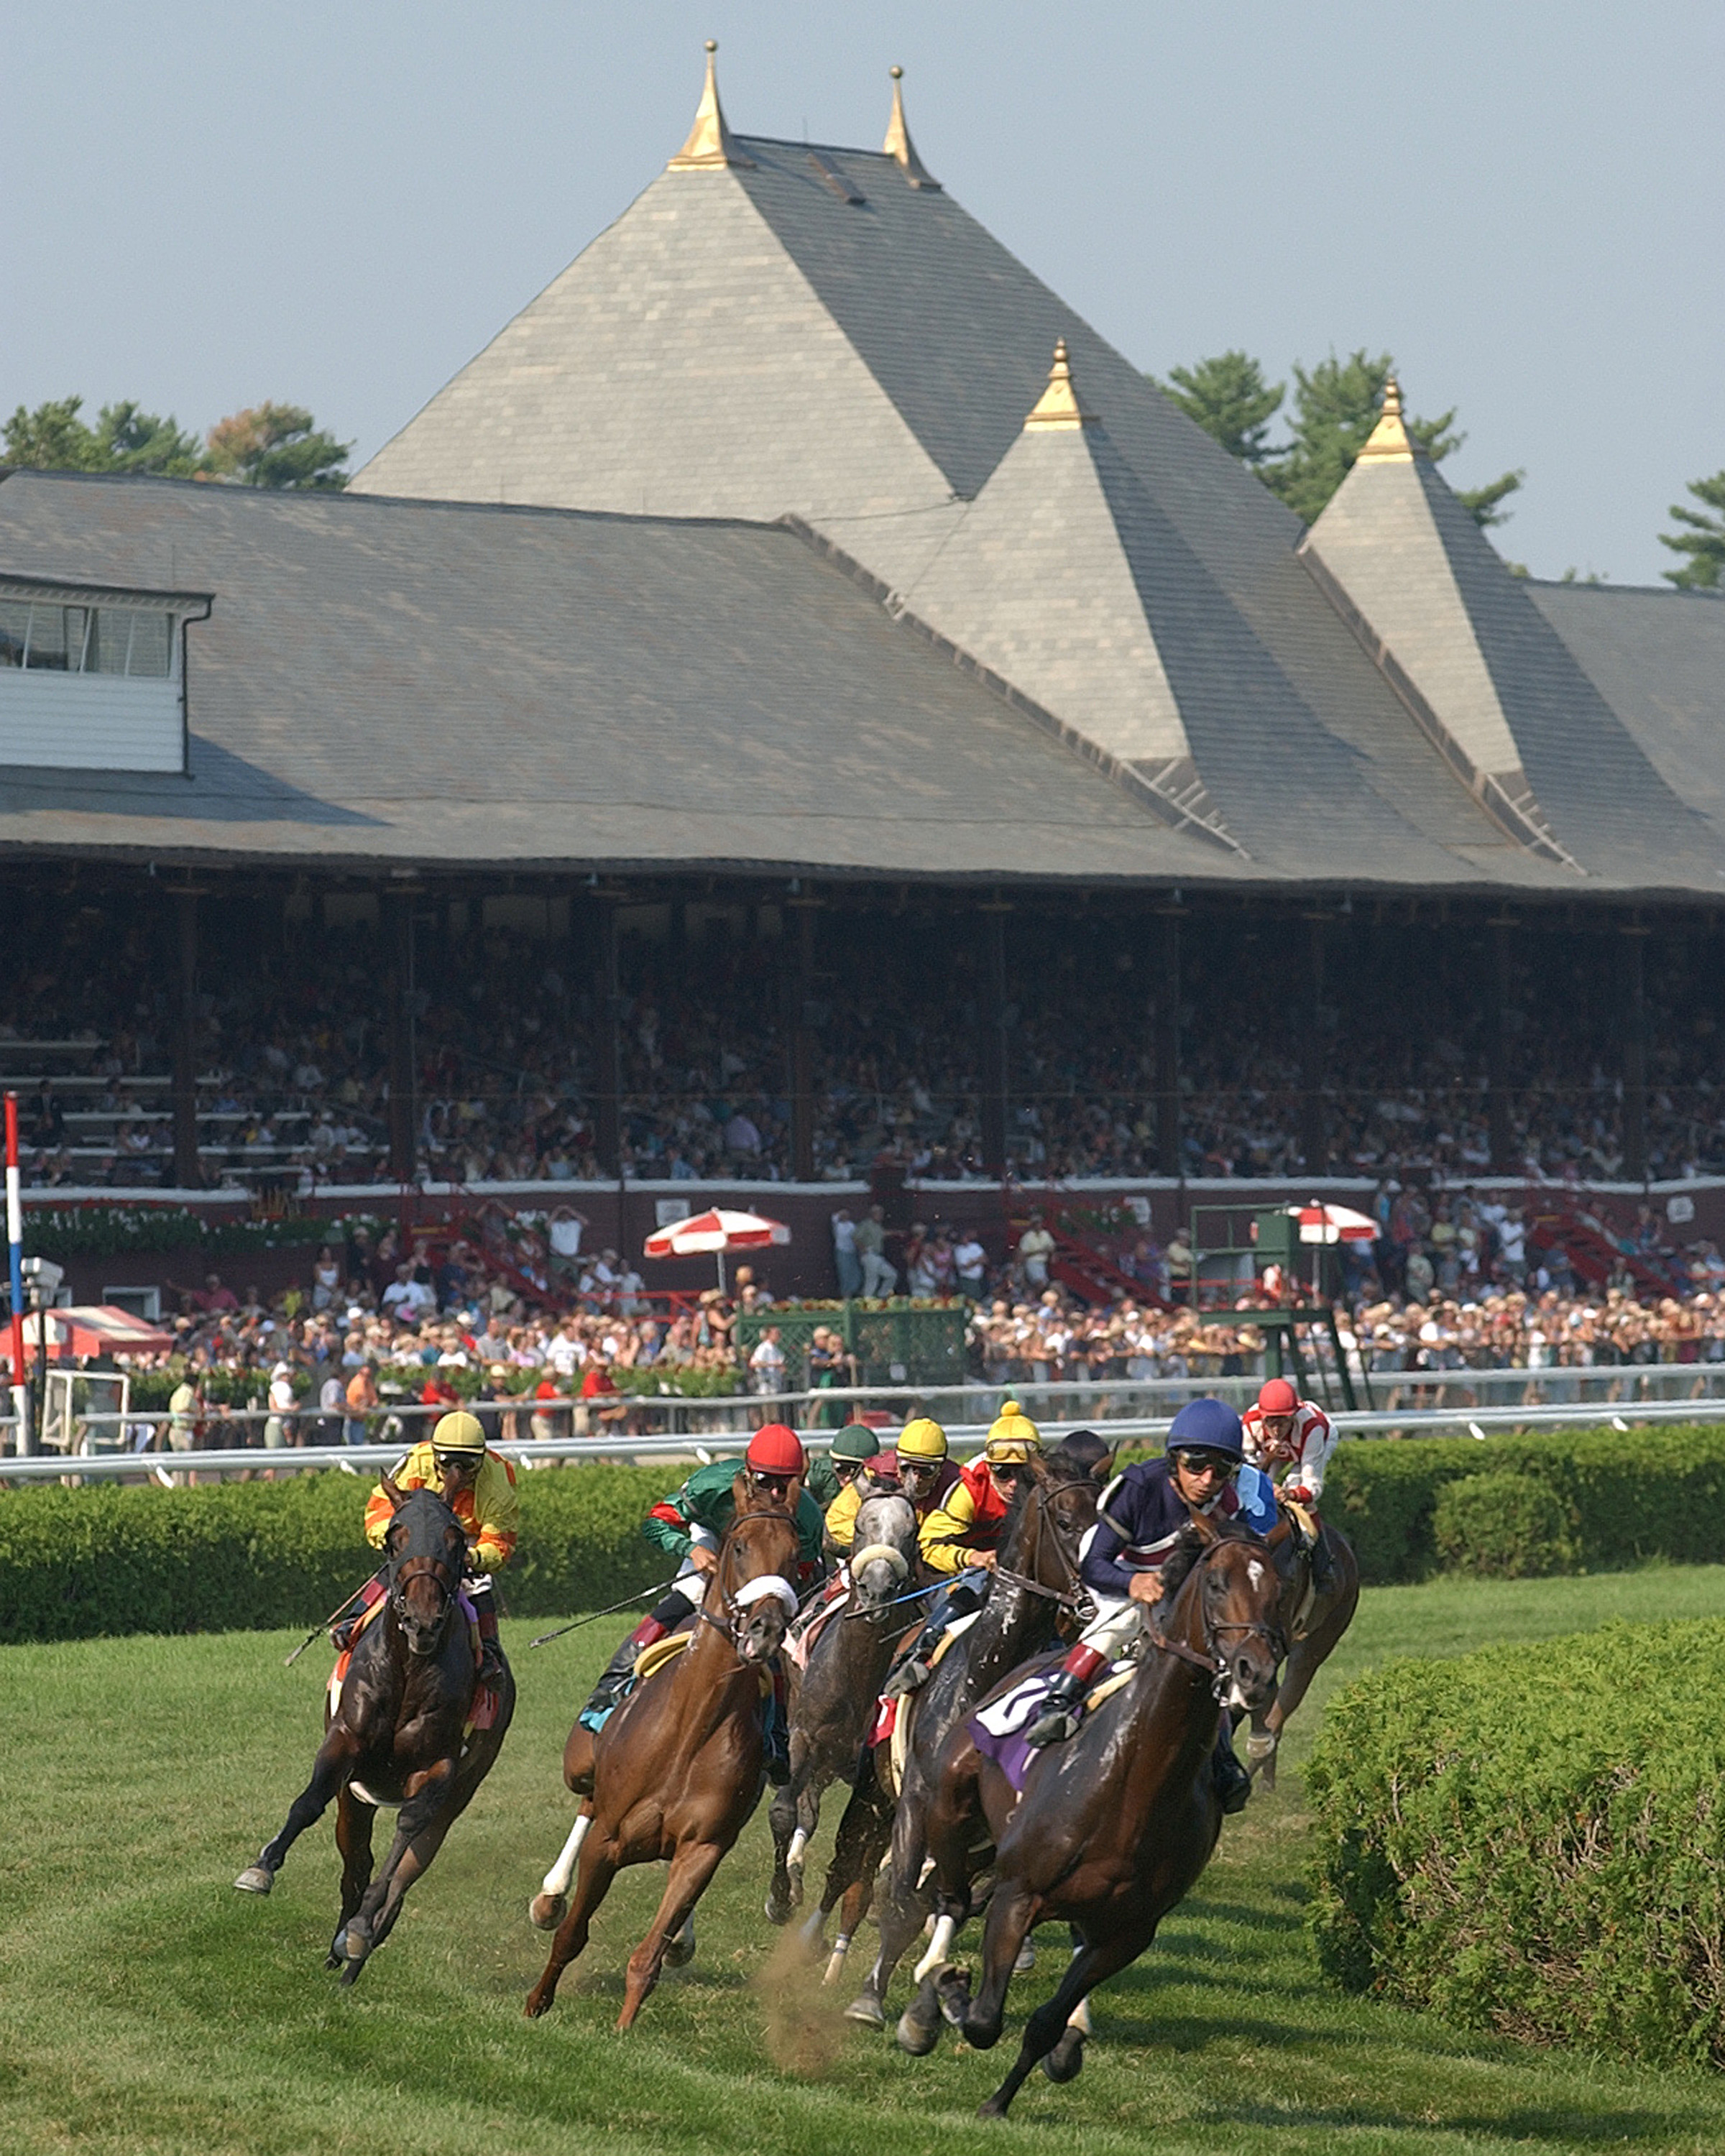 Saratoga leads all America's racetracks in attendance and wagering, but it wasn't always that way. Photo: NYRA.com